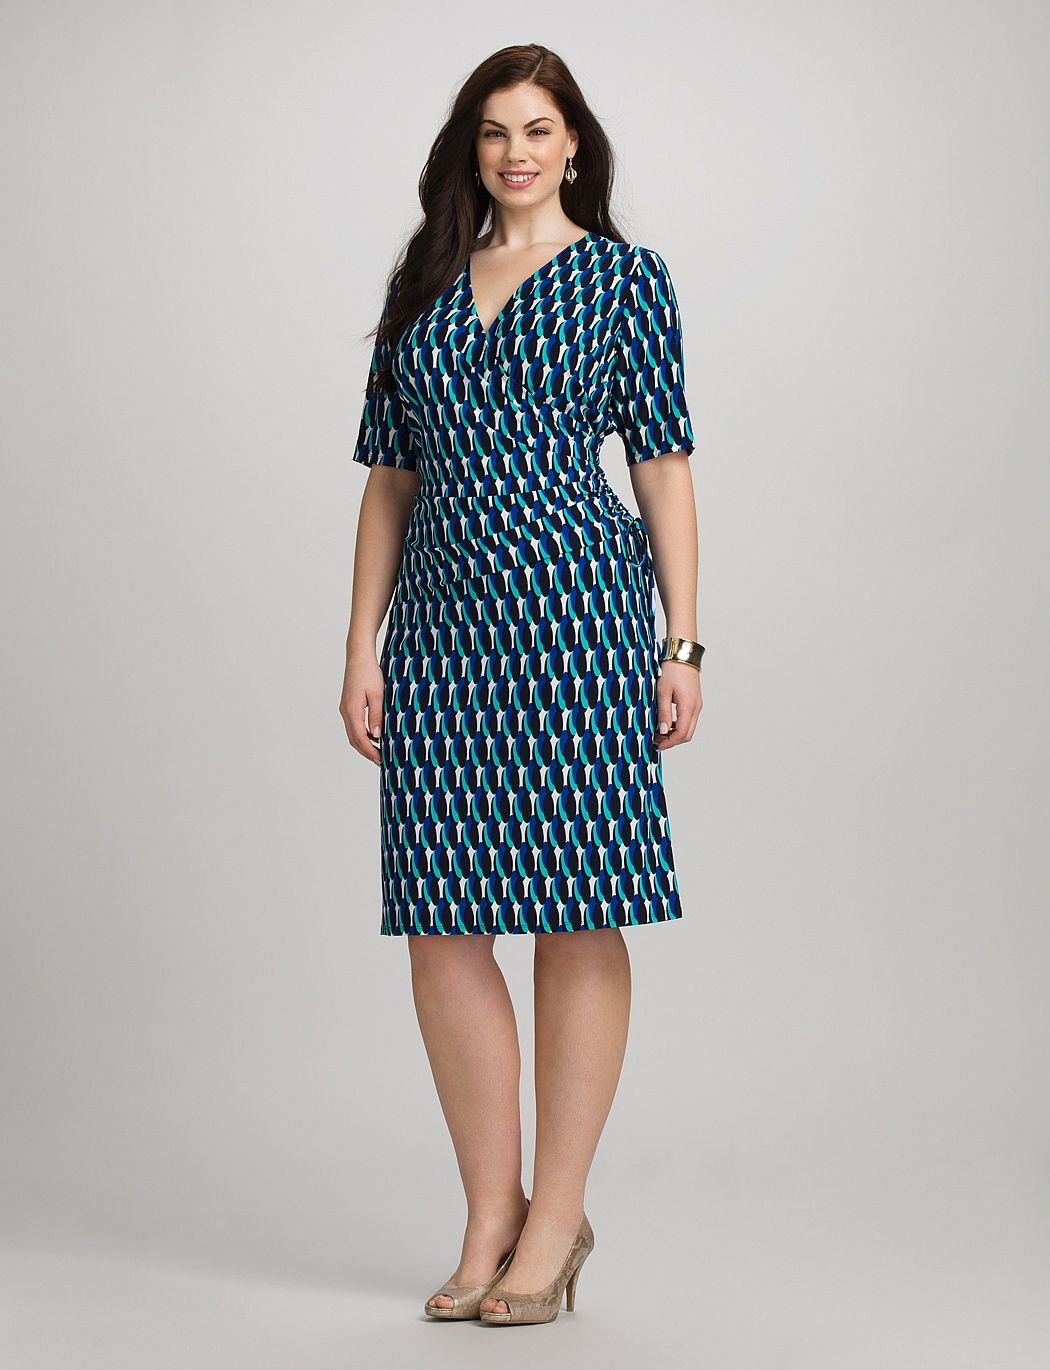 plus size | dresses | work dresses | plus size geometric v-neck